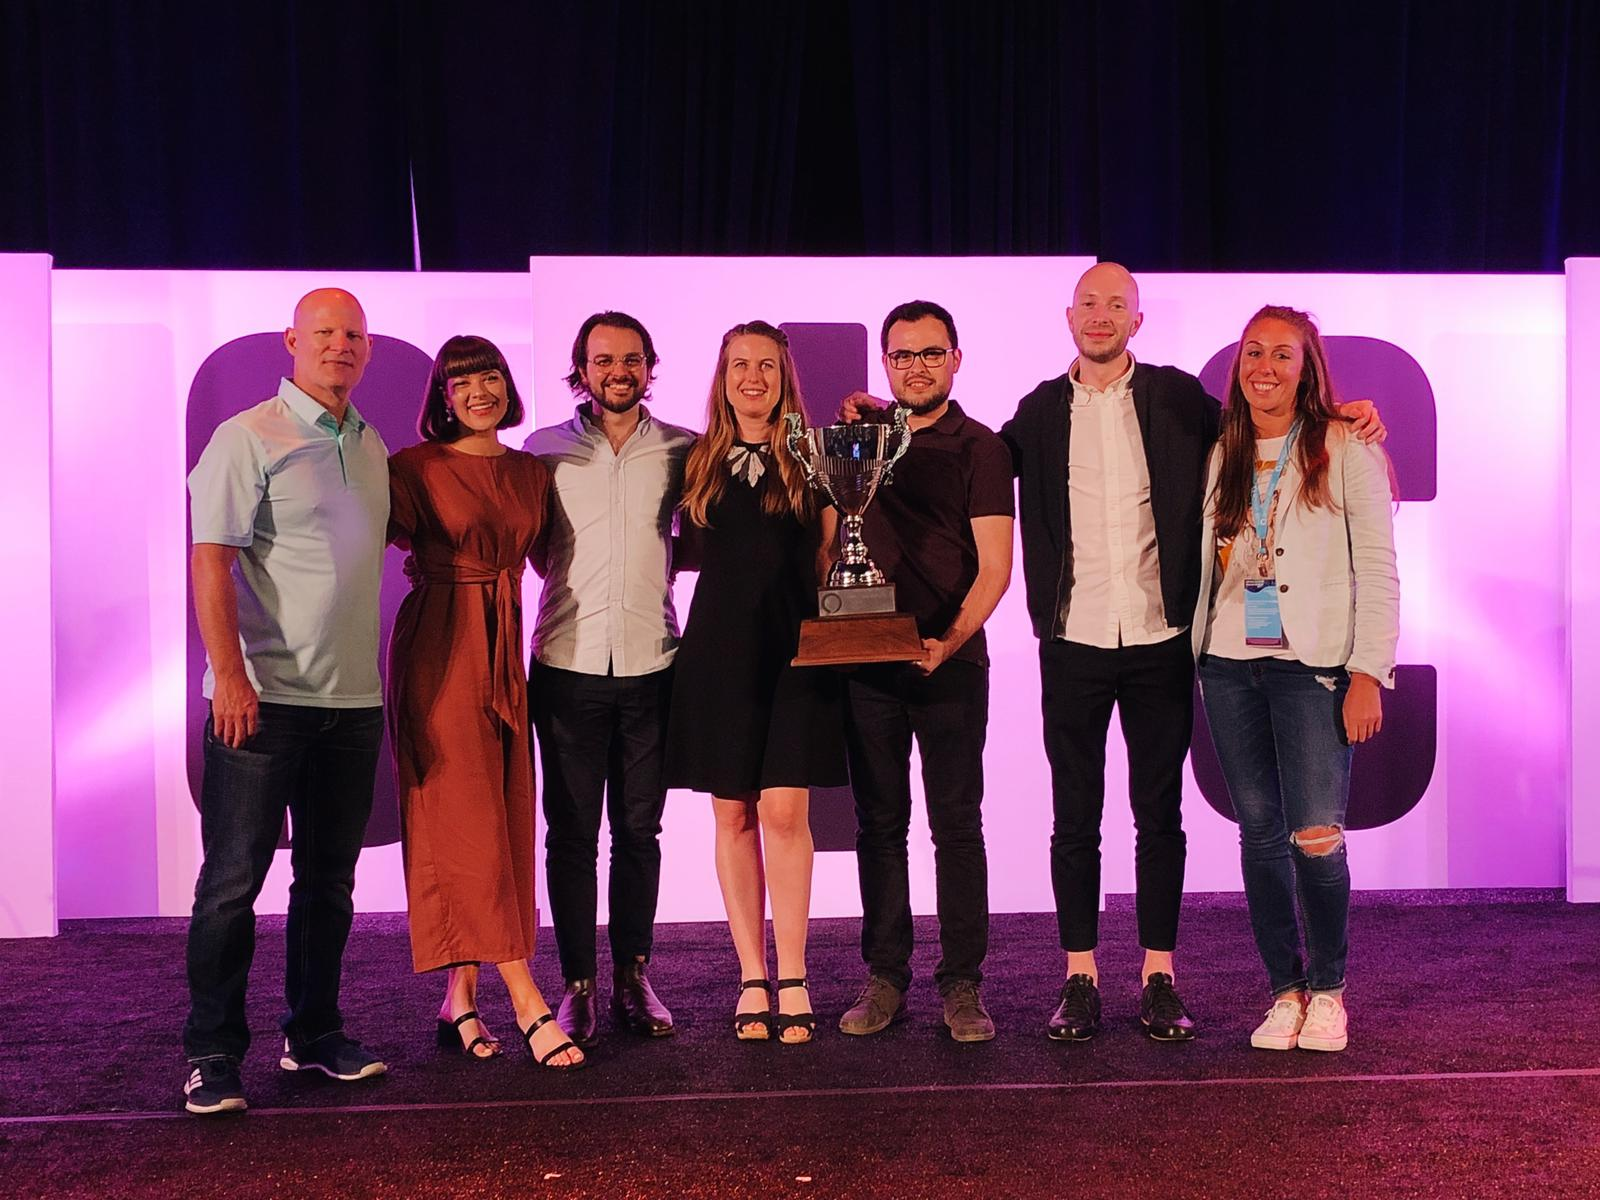 Clemenger BBDO crowned as the inaugural global winner of the Amazon Alexa World Cup